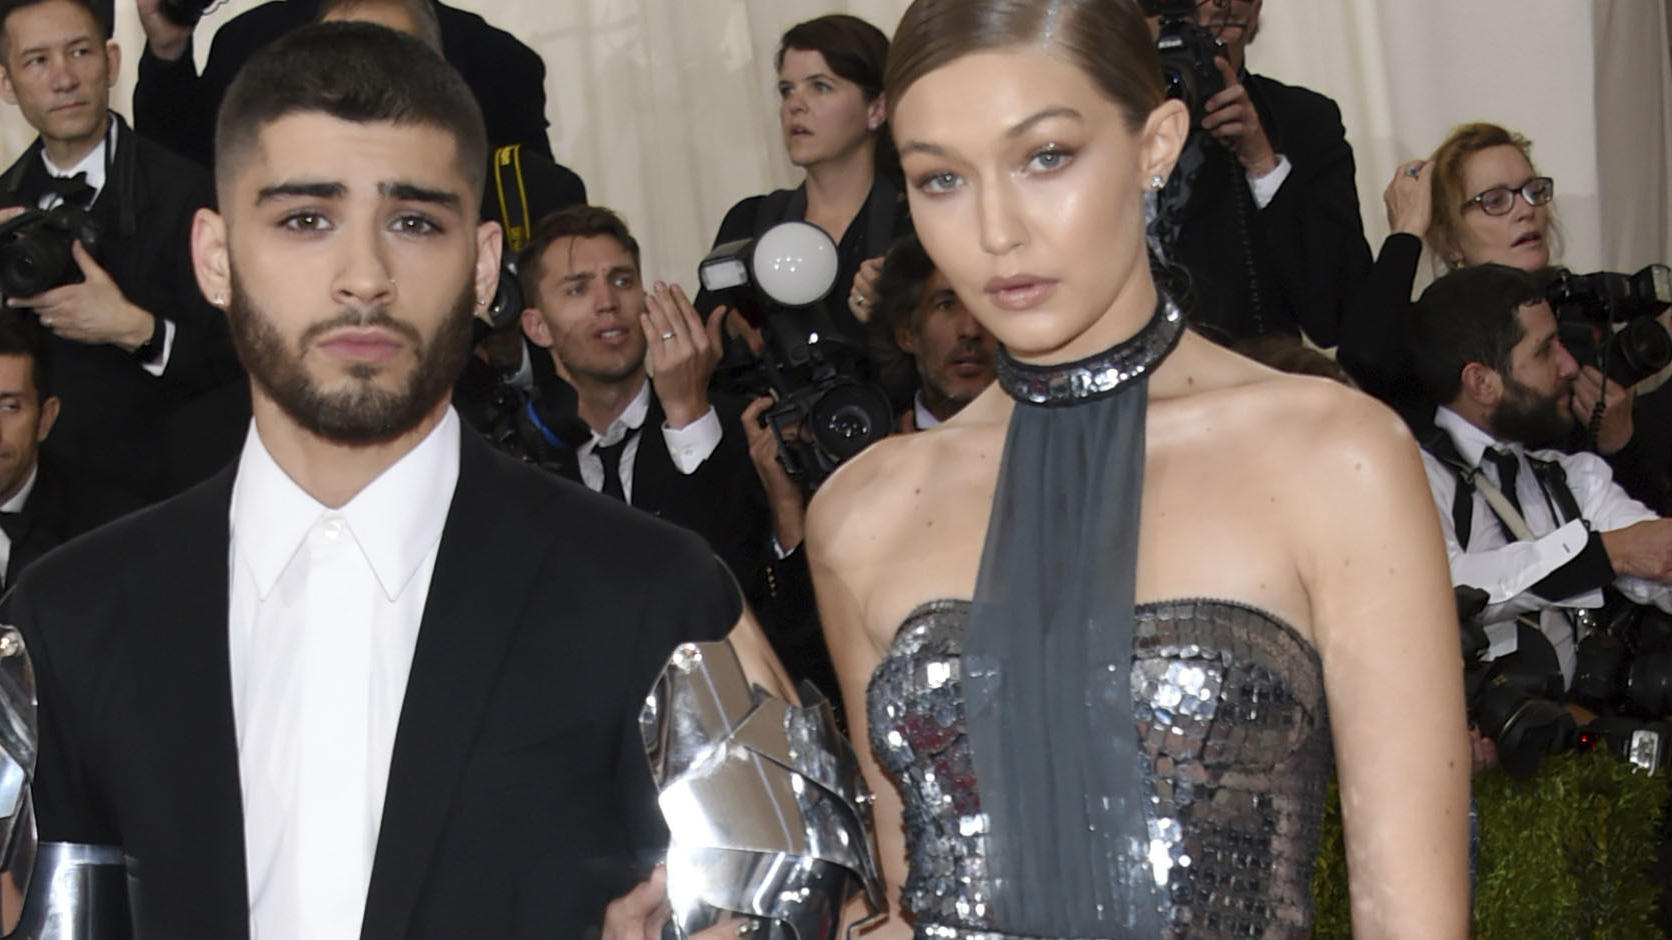 FILE - In this May 2, 2016 file photo, Zayn Malik, left, and Gigi Hadid arrive at The Metropolitan Museum of Art Costume Institute Benefit Gala in New York. The couple took to social media Wednesday, Sept. 23, 2020, to celebrate the arrival of their